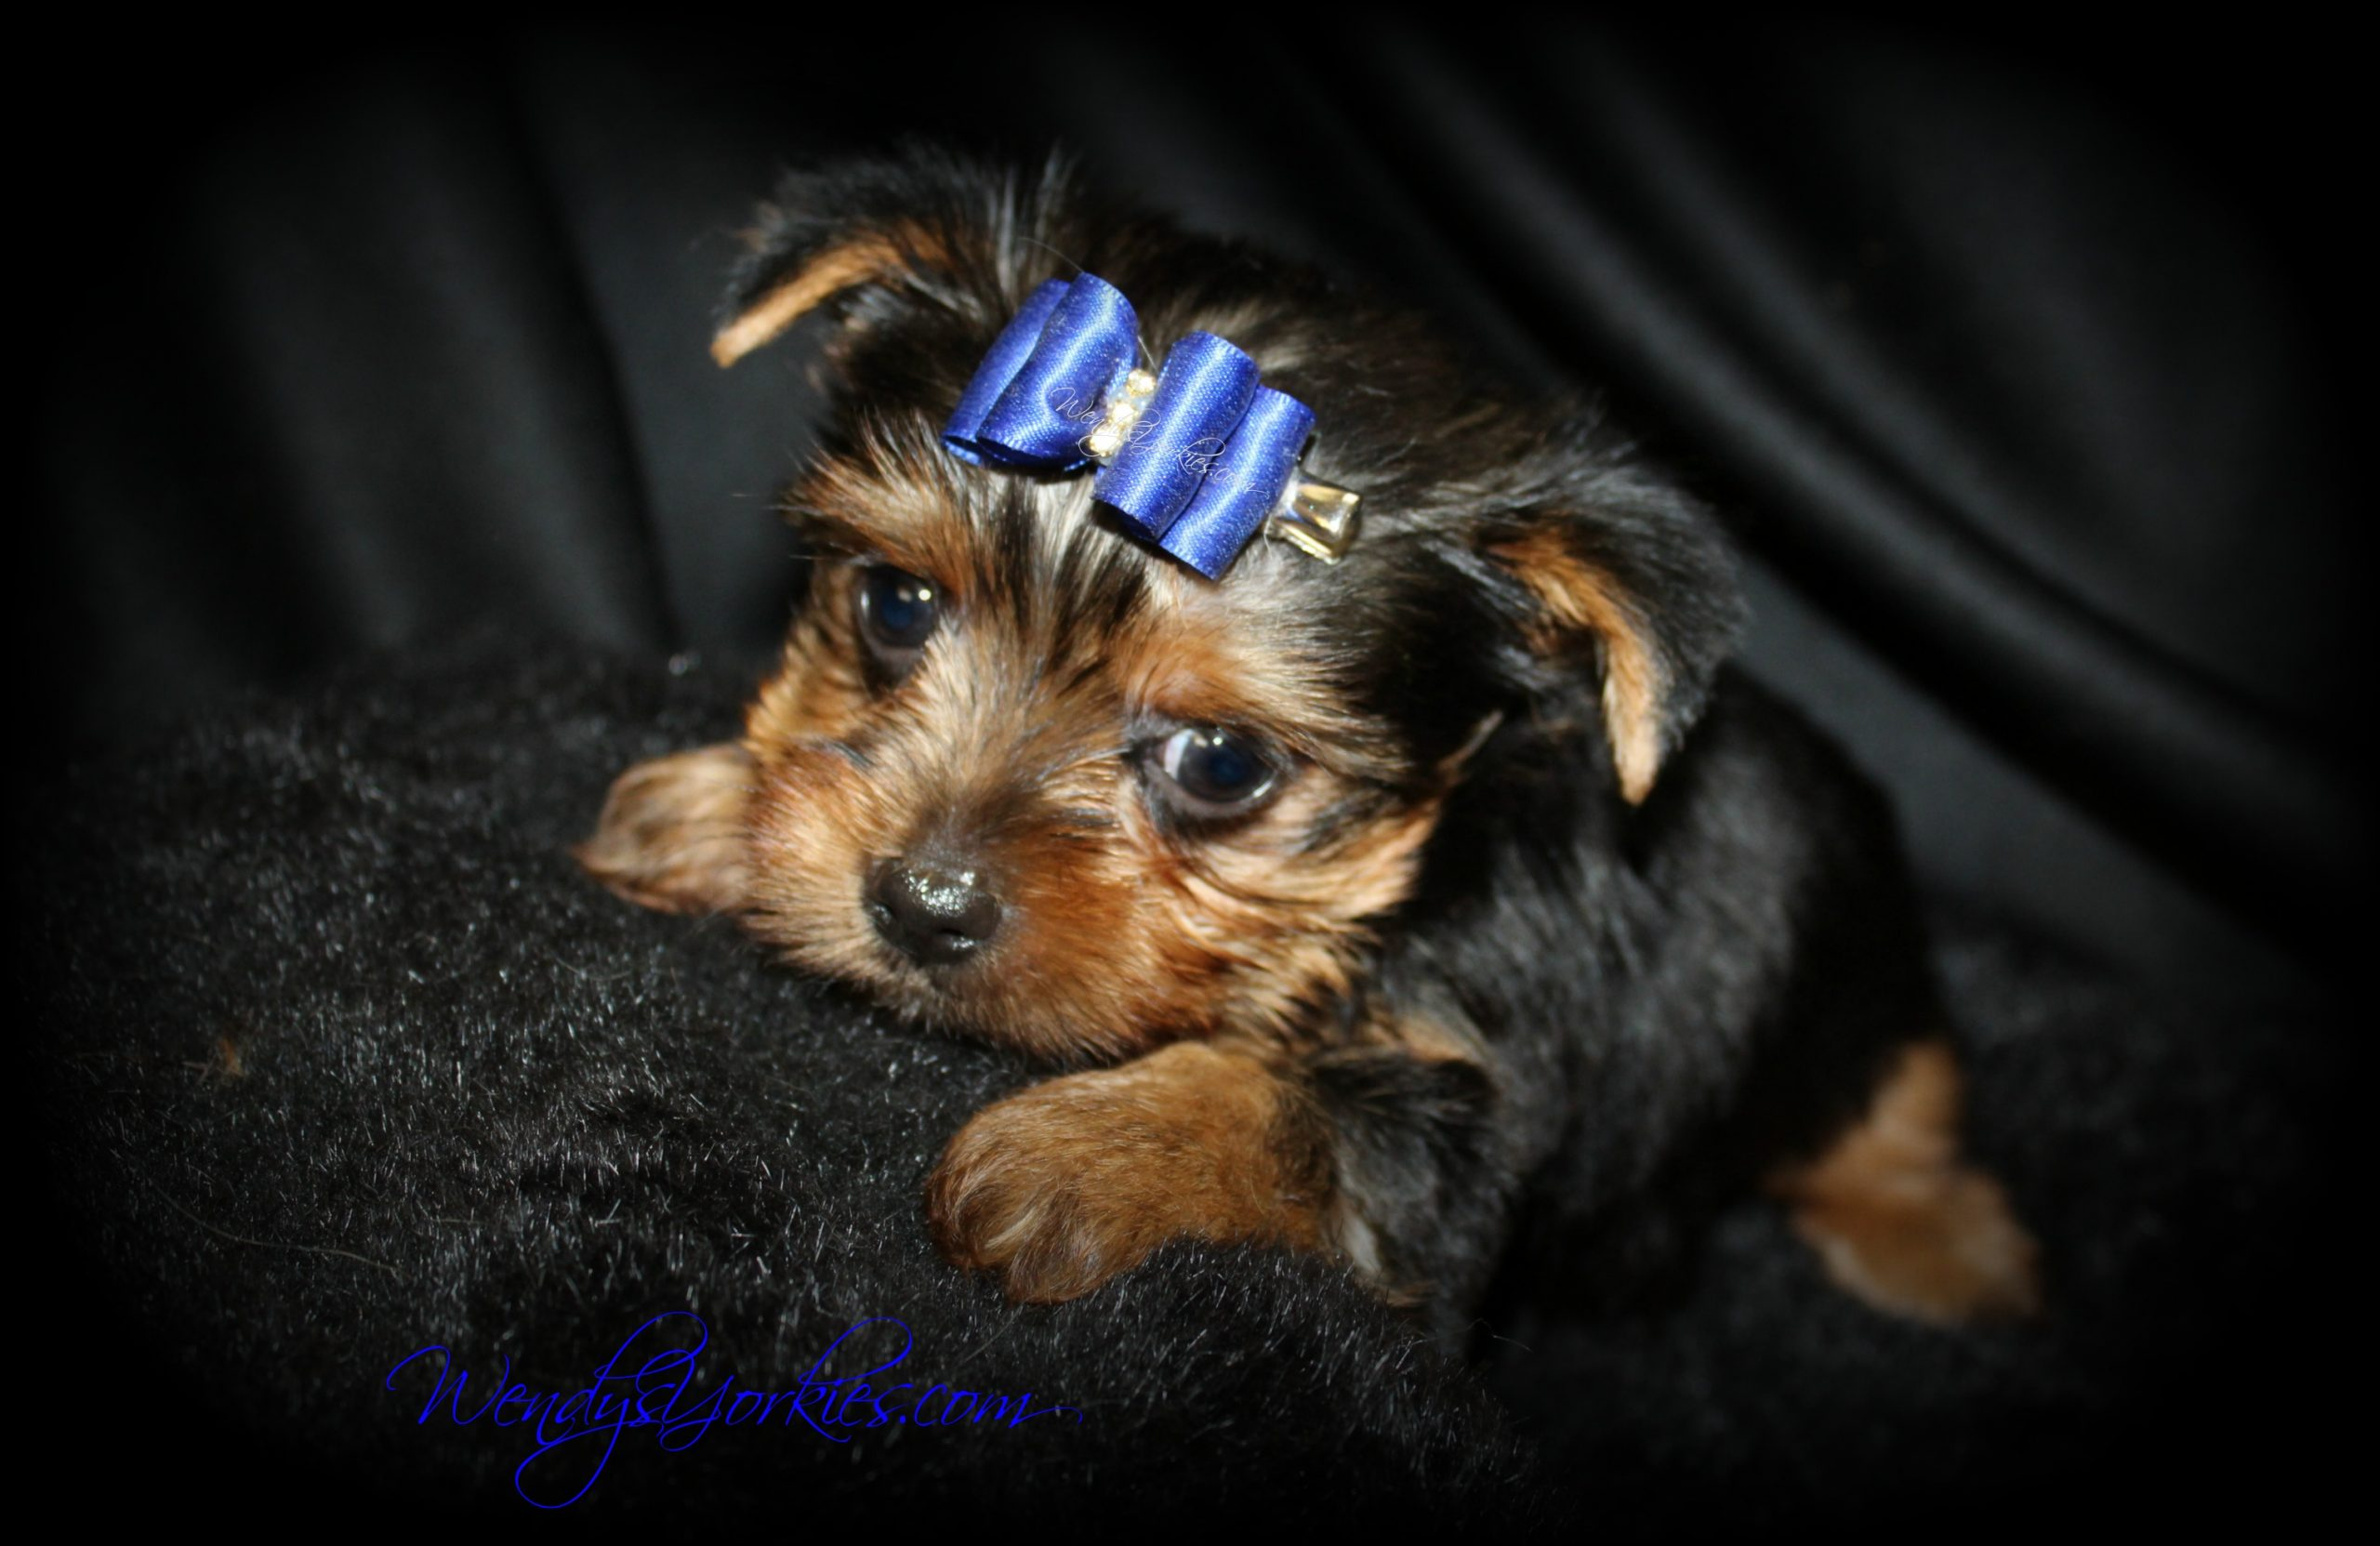 Male Yorkie puppy, Star m1, WendysYorkies.com